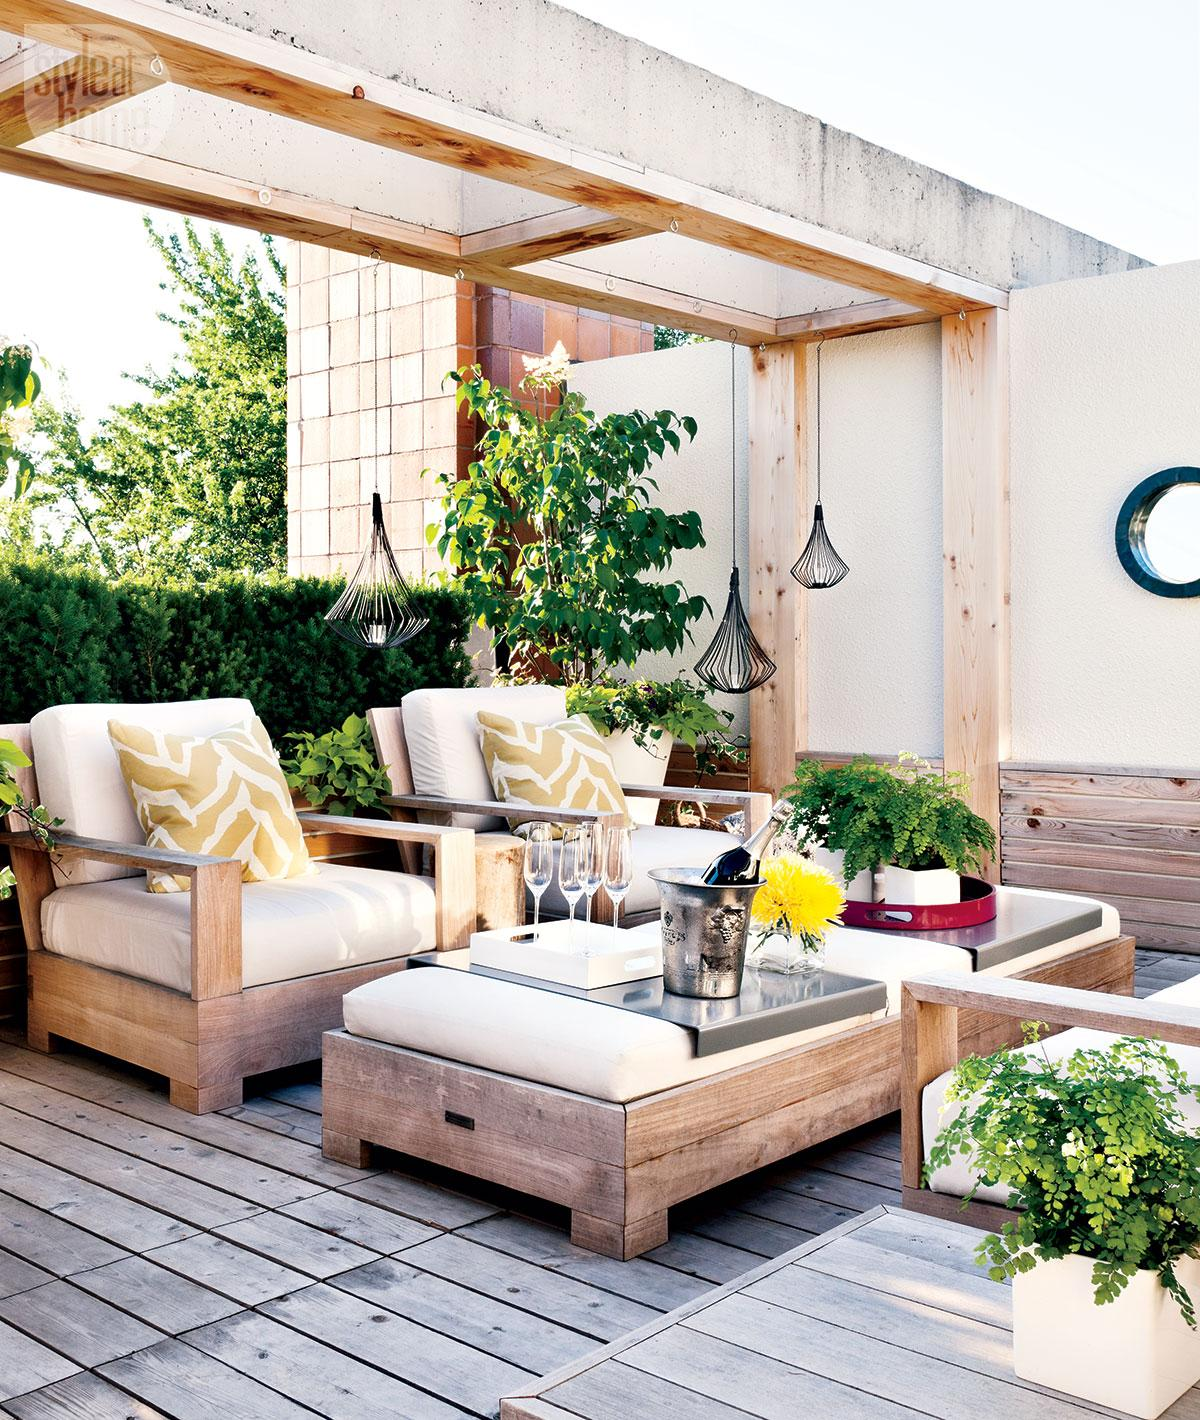 6. Modern Rooftop Terrace Retreat